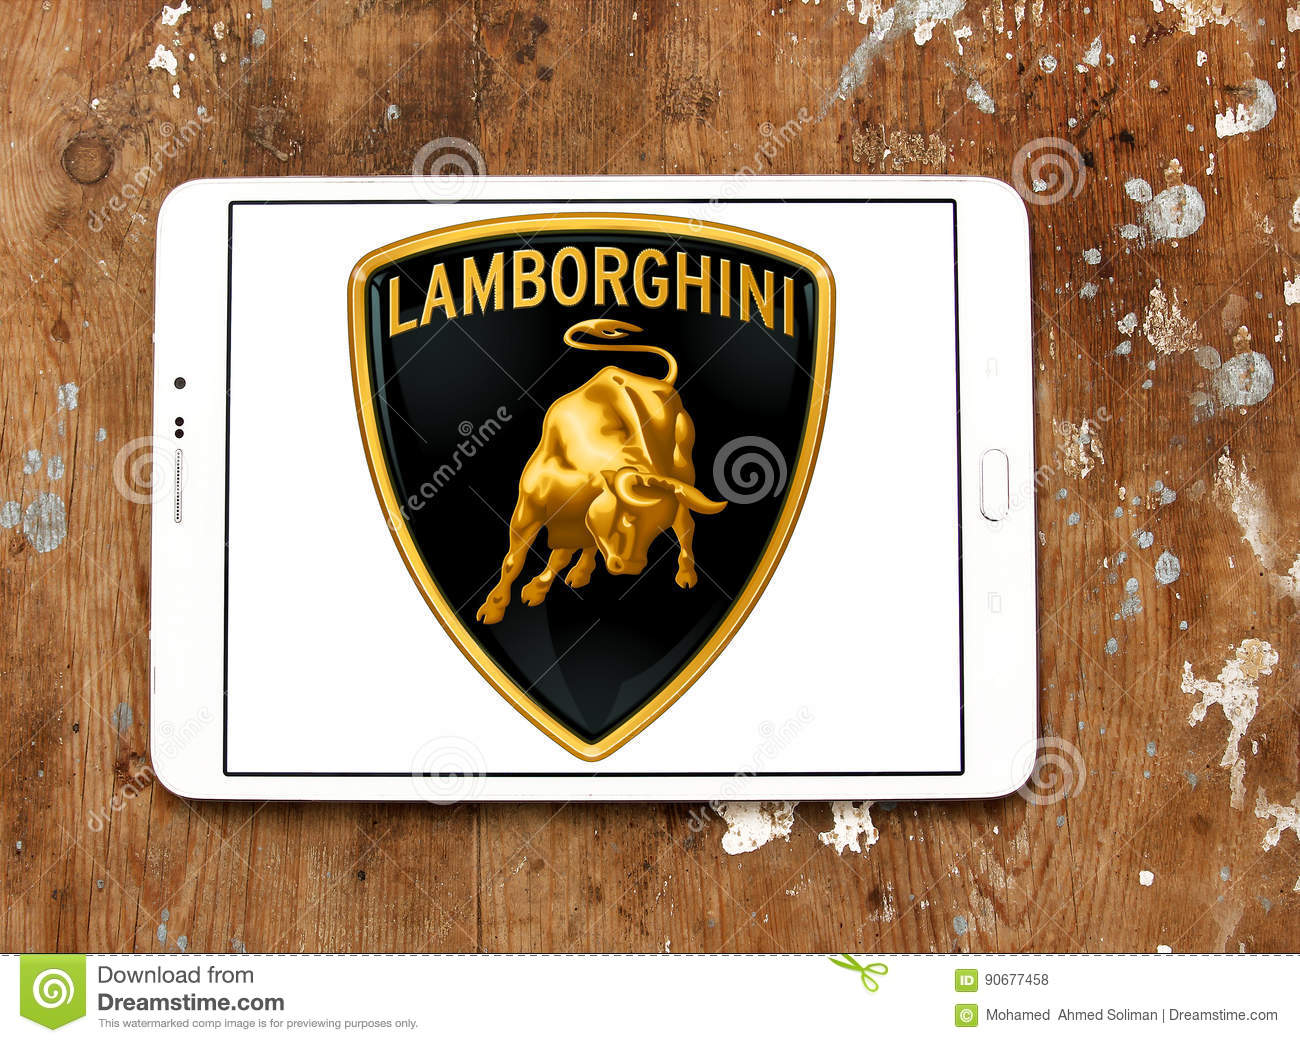 Lamborghini Car Logo Editorial Stock Photo Image Of Brand 90677458